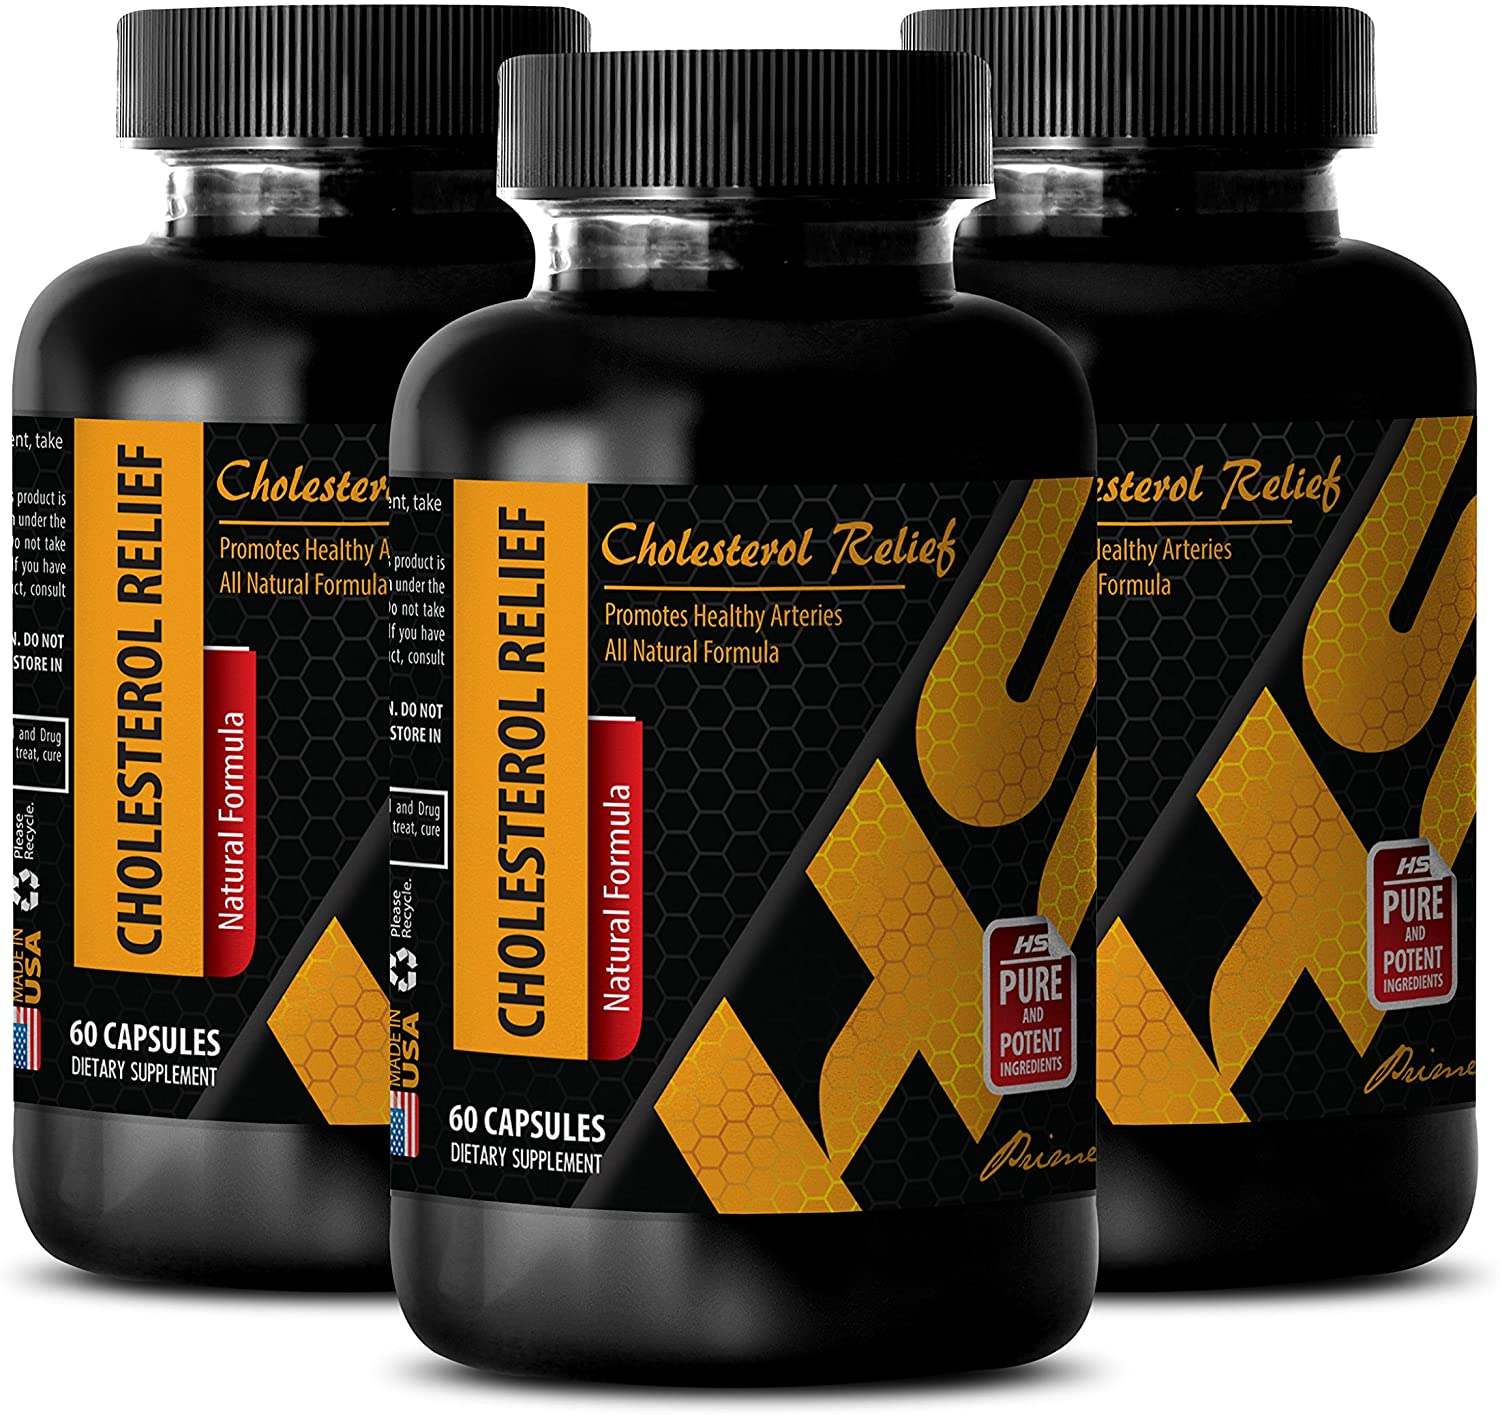 Blood Pressure Diet - Cholesterol Relief - All Natural Formula - Promotes Healthy Arteries - Cholesterol Hair Treatment - 3 Bottles (180 Capsules)